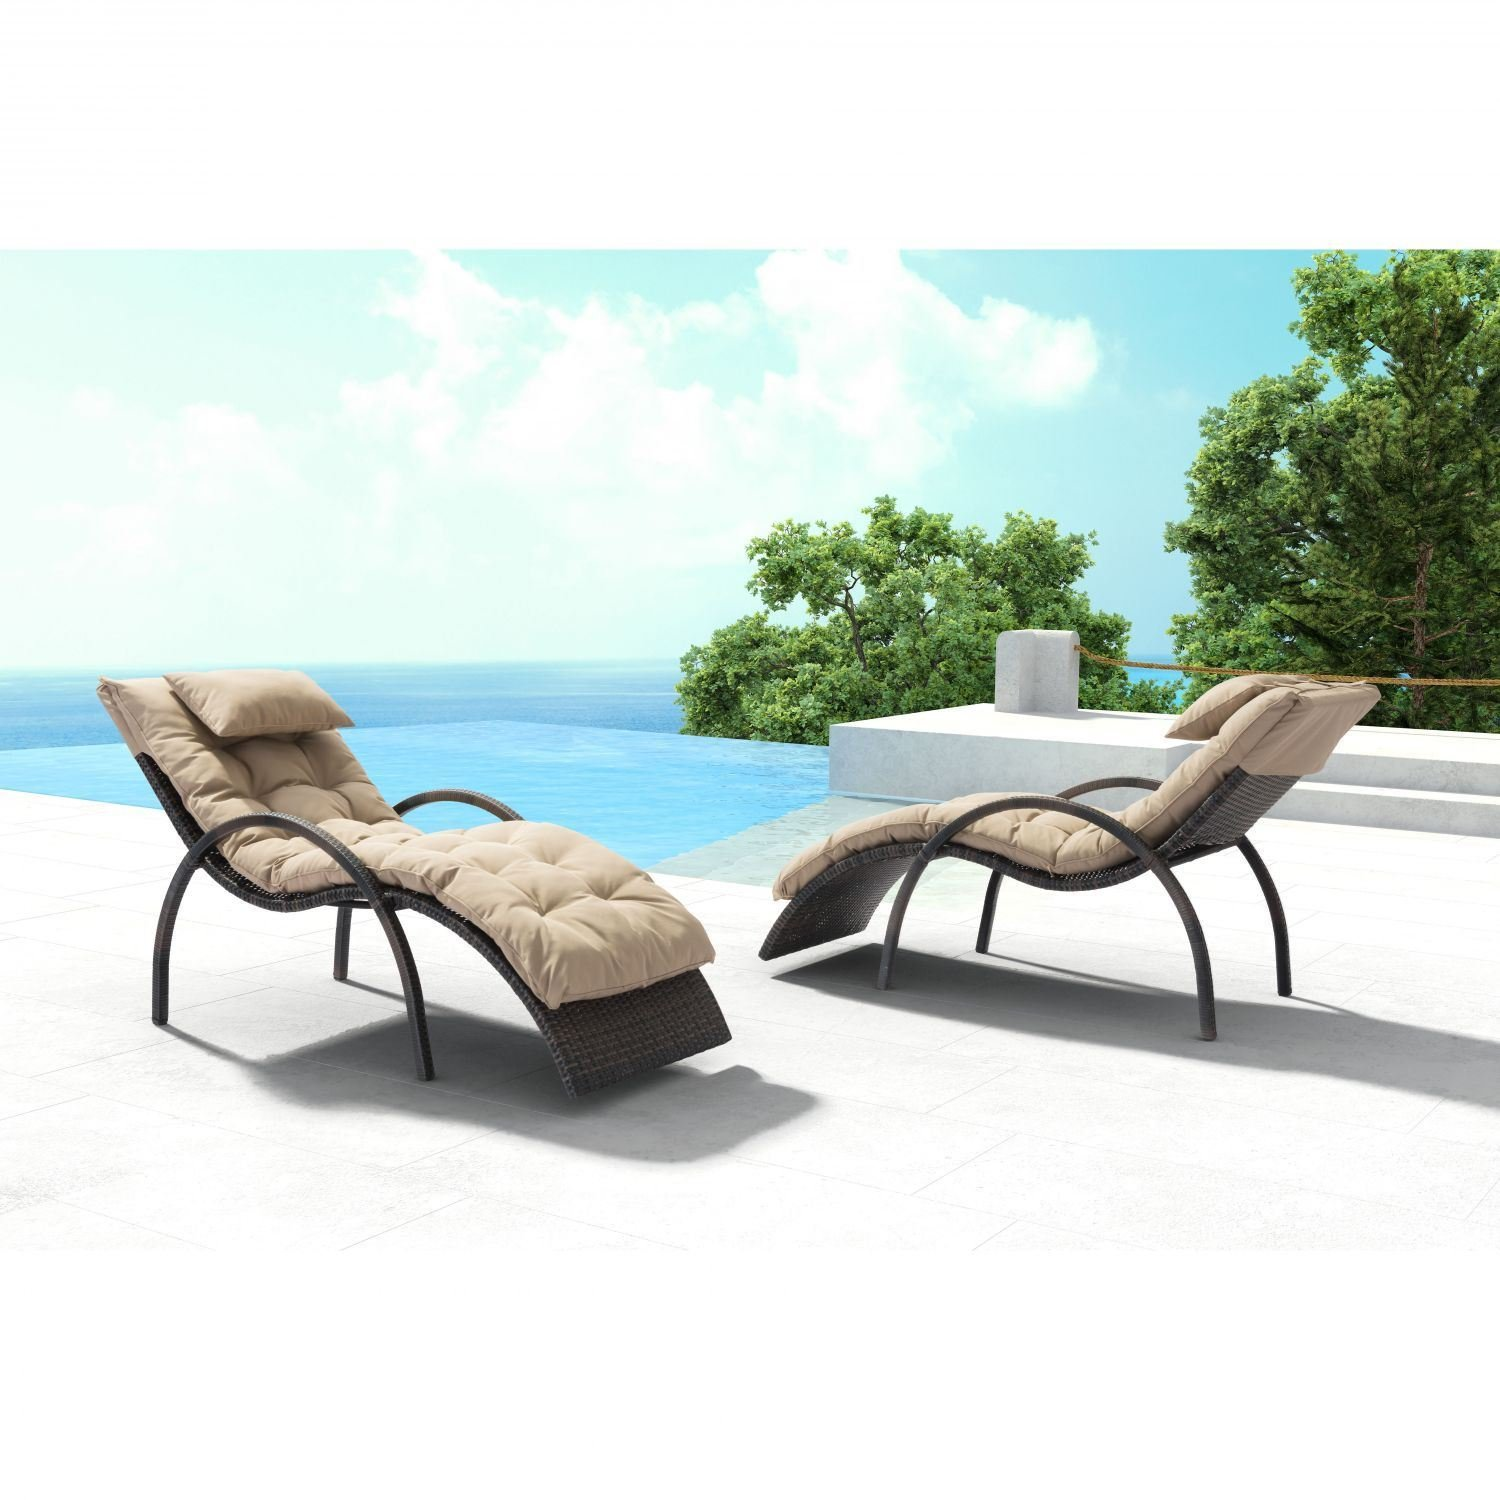 eggertz beach chaise lounge brown beige 703841 zuo